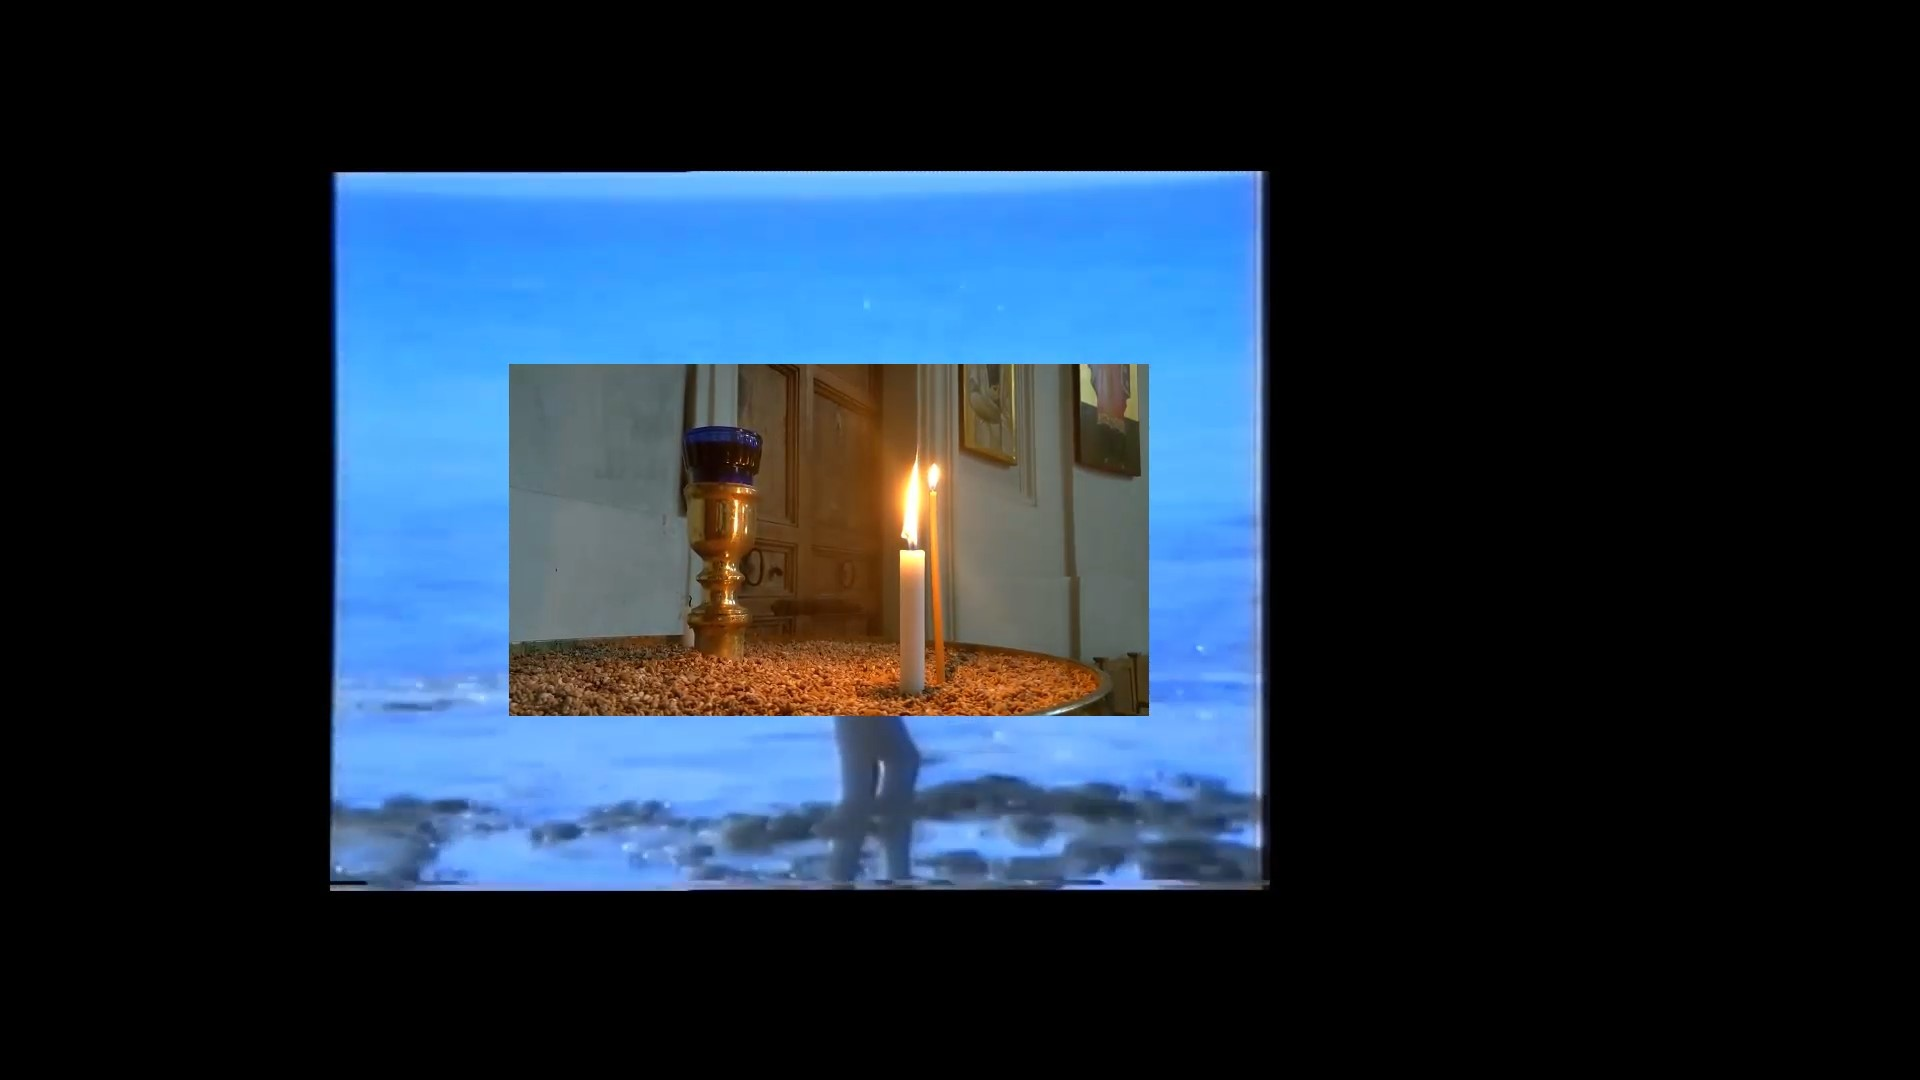 lit candles in a shrine superimposed on an image of a figure walking along a darkened shoreline